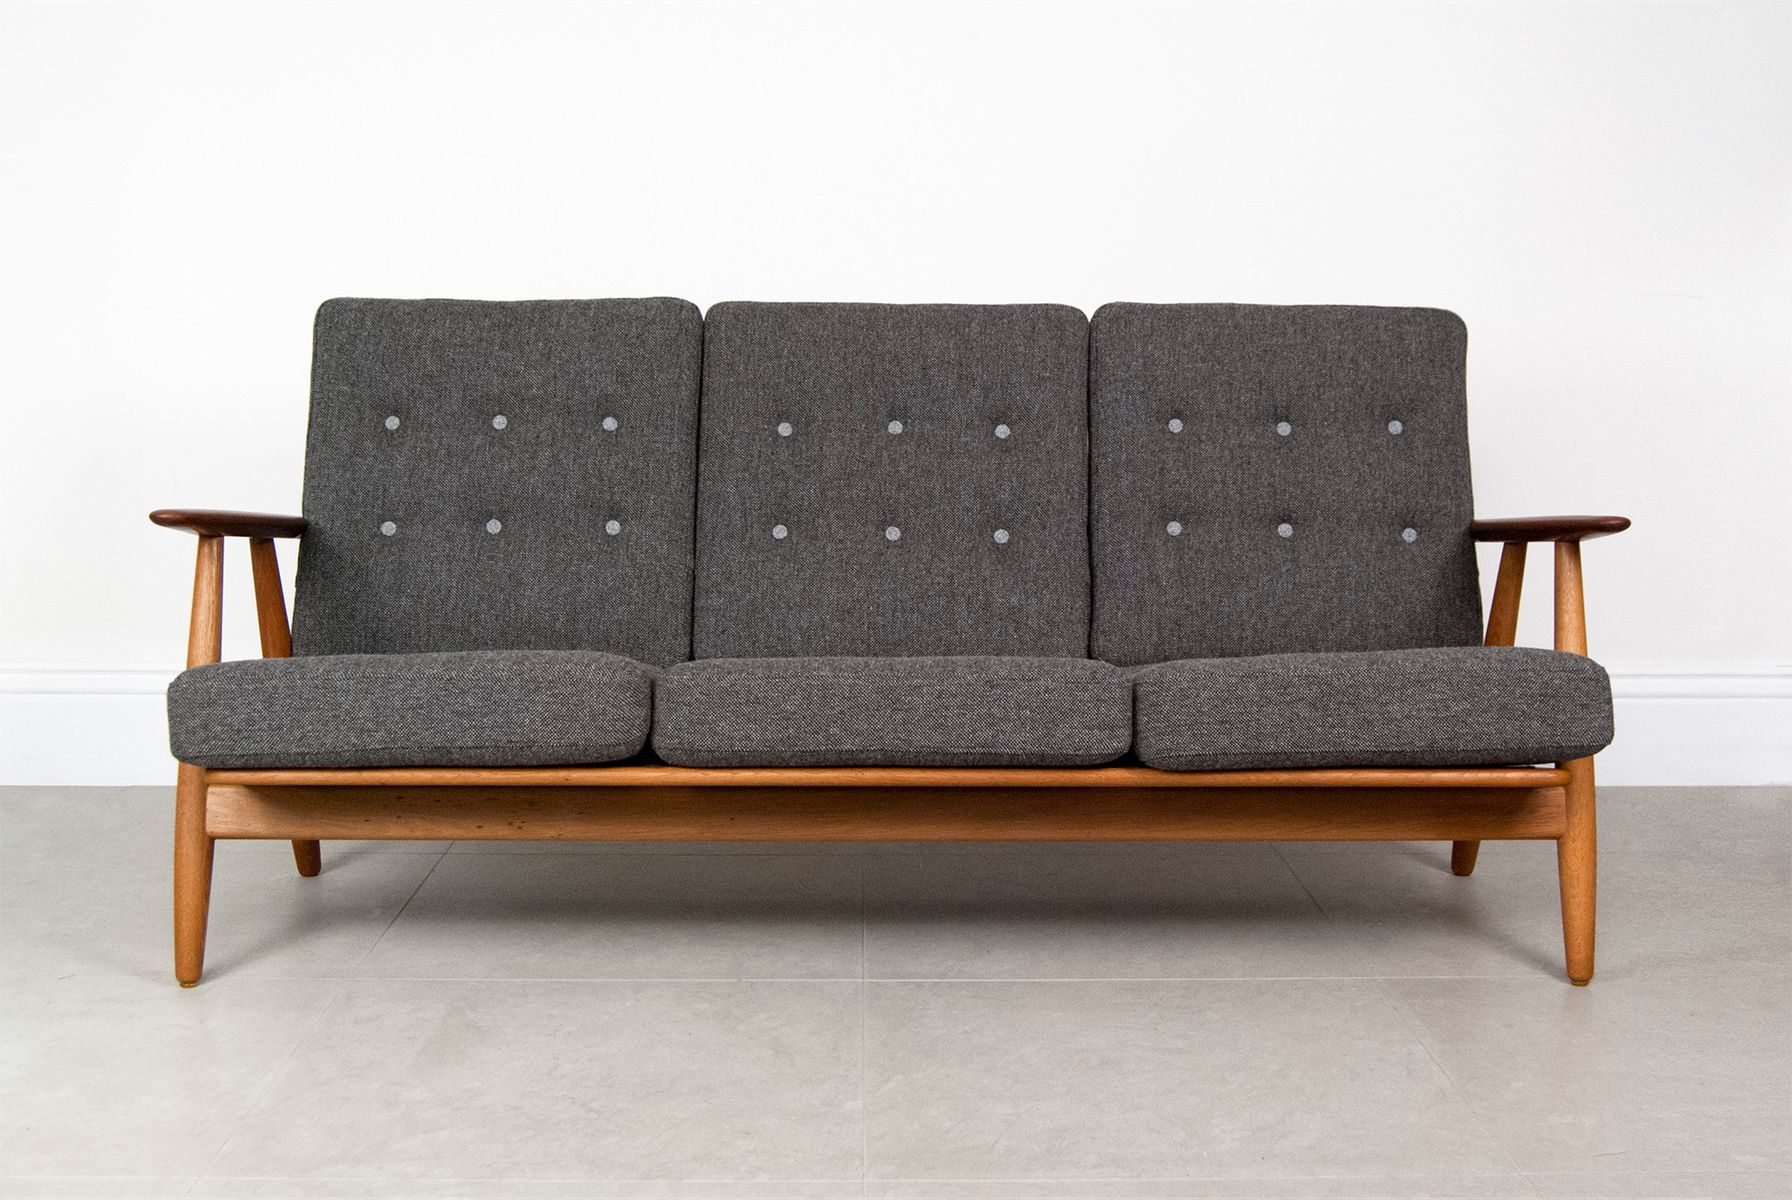 ge 240 cigar oak teak sofa by hans wegner for getama 1955 for sale at pamono. Black Bedroom Furniture Sets. Home Design Ideas